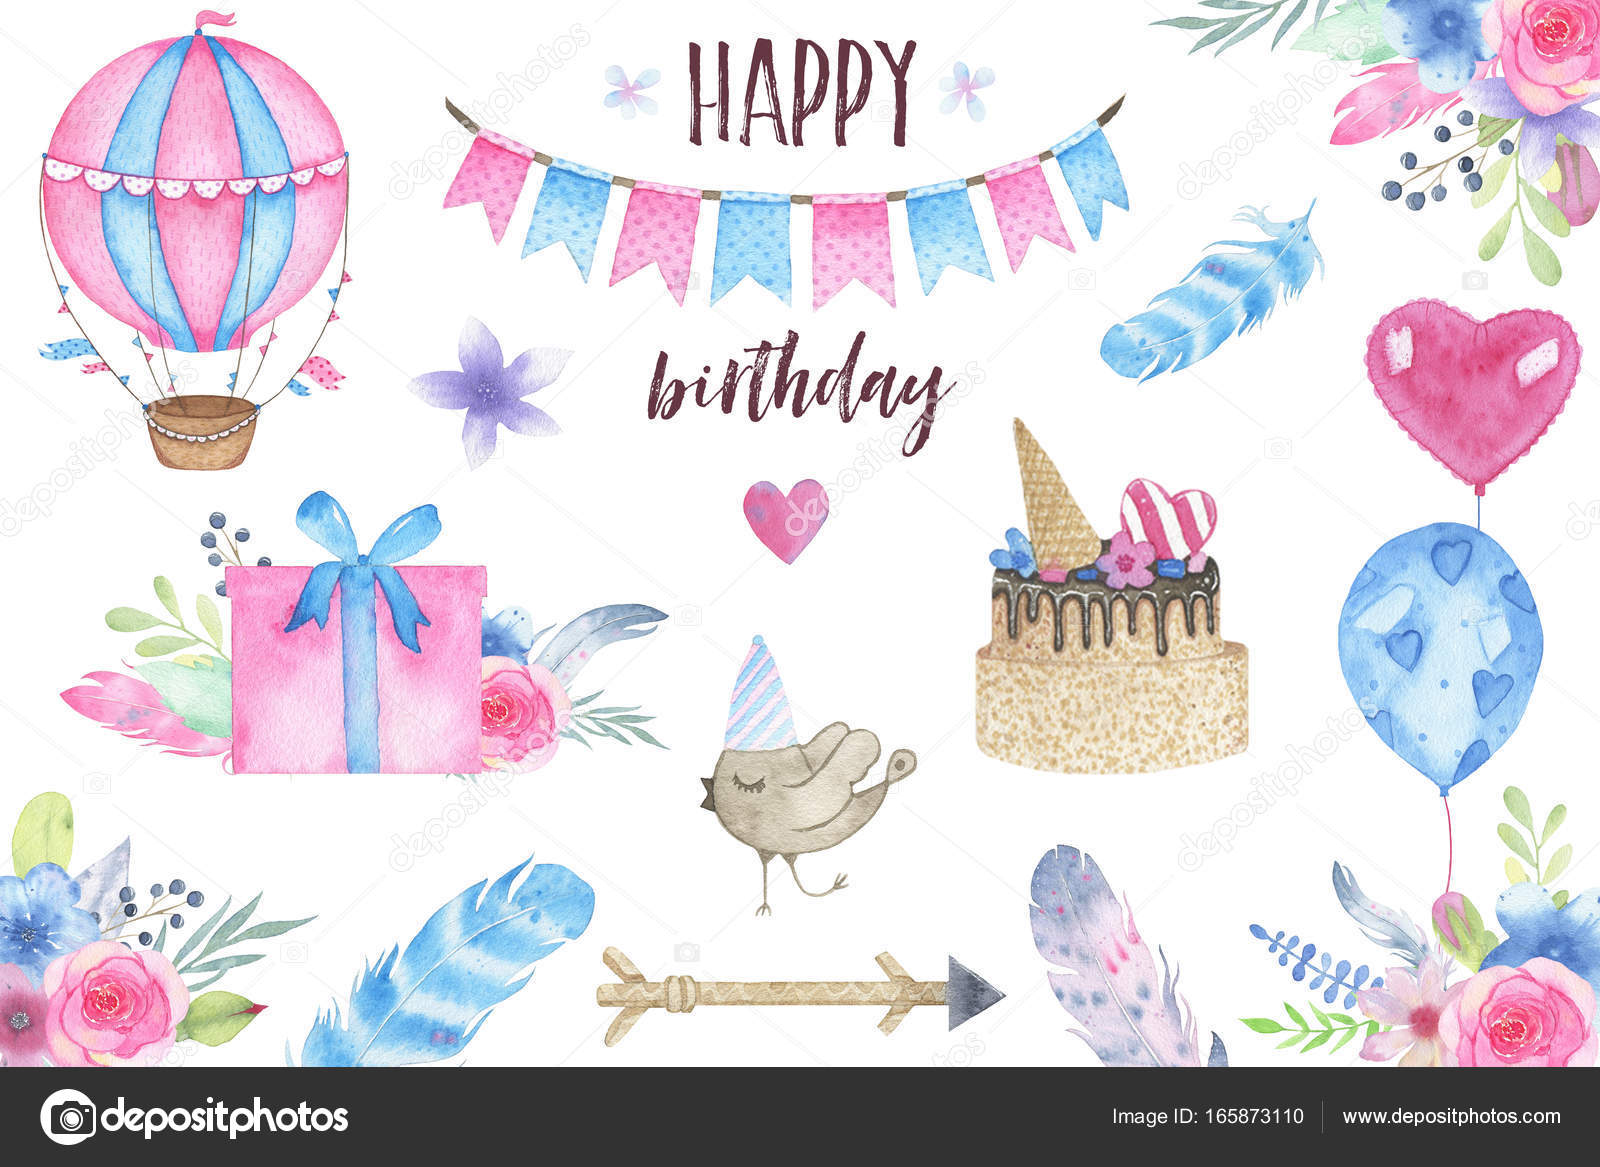 Watercolor happy birthday party set with bird air balloon garland watercolor happy birthday party set with bird air balloon garland and flowers bouquets feathers arrow gift izmirmasajfo Image collections